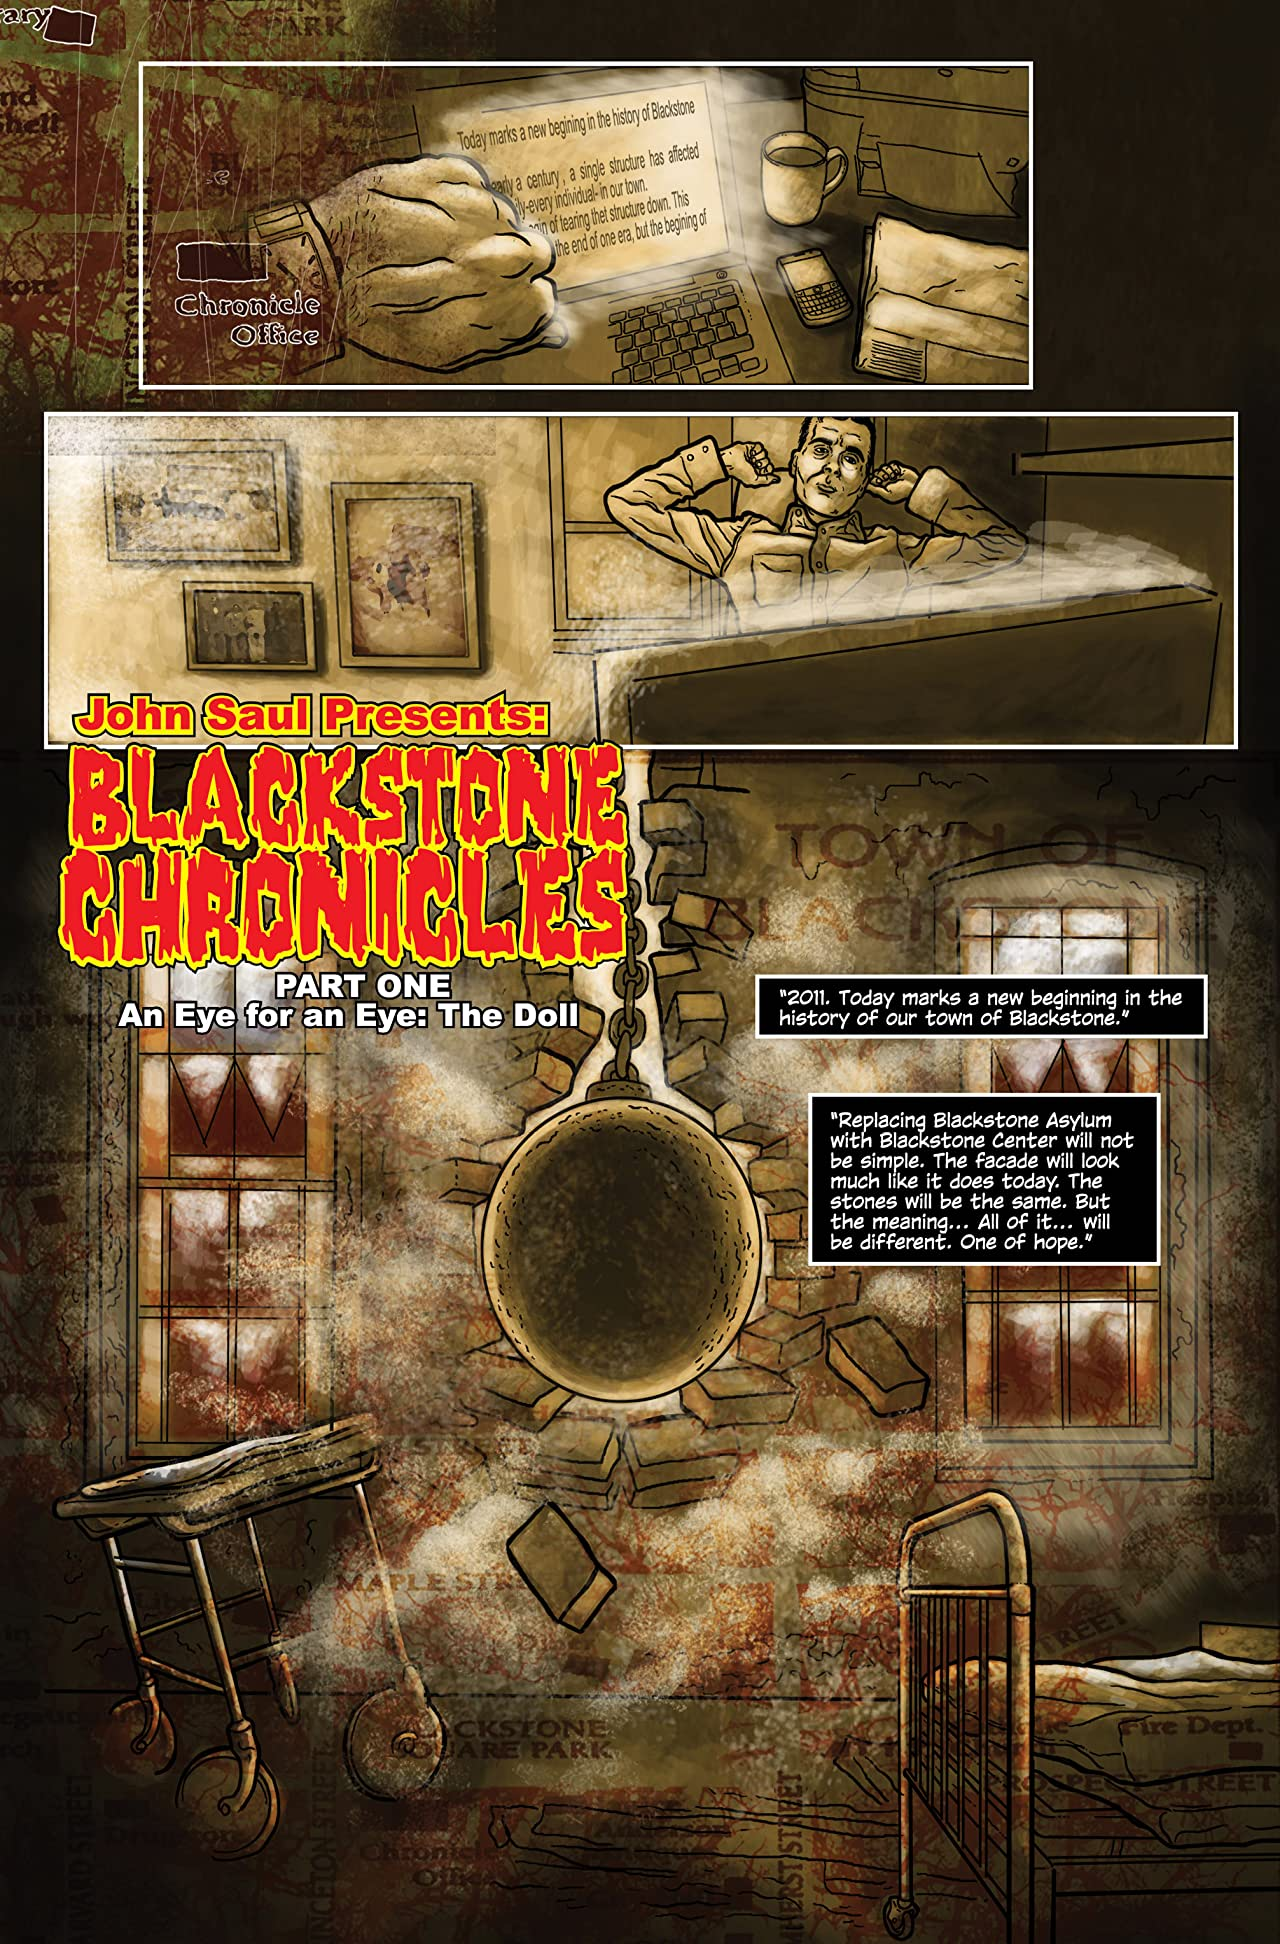 John Saul Presents The Blackstone Chronicles #0